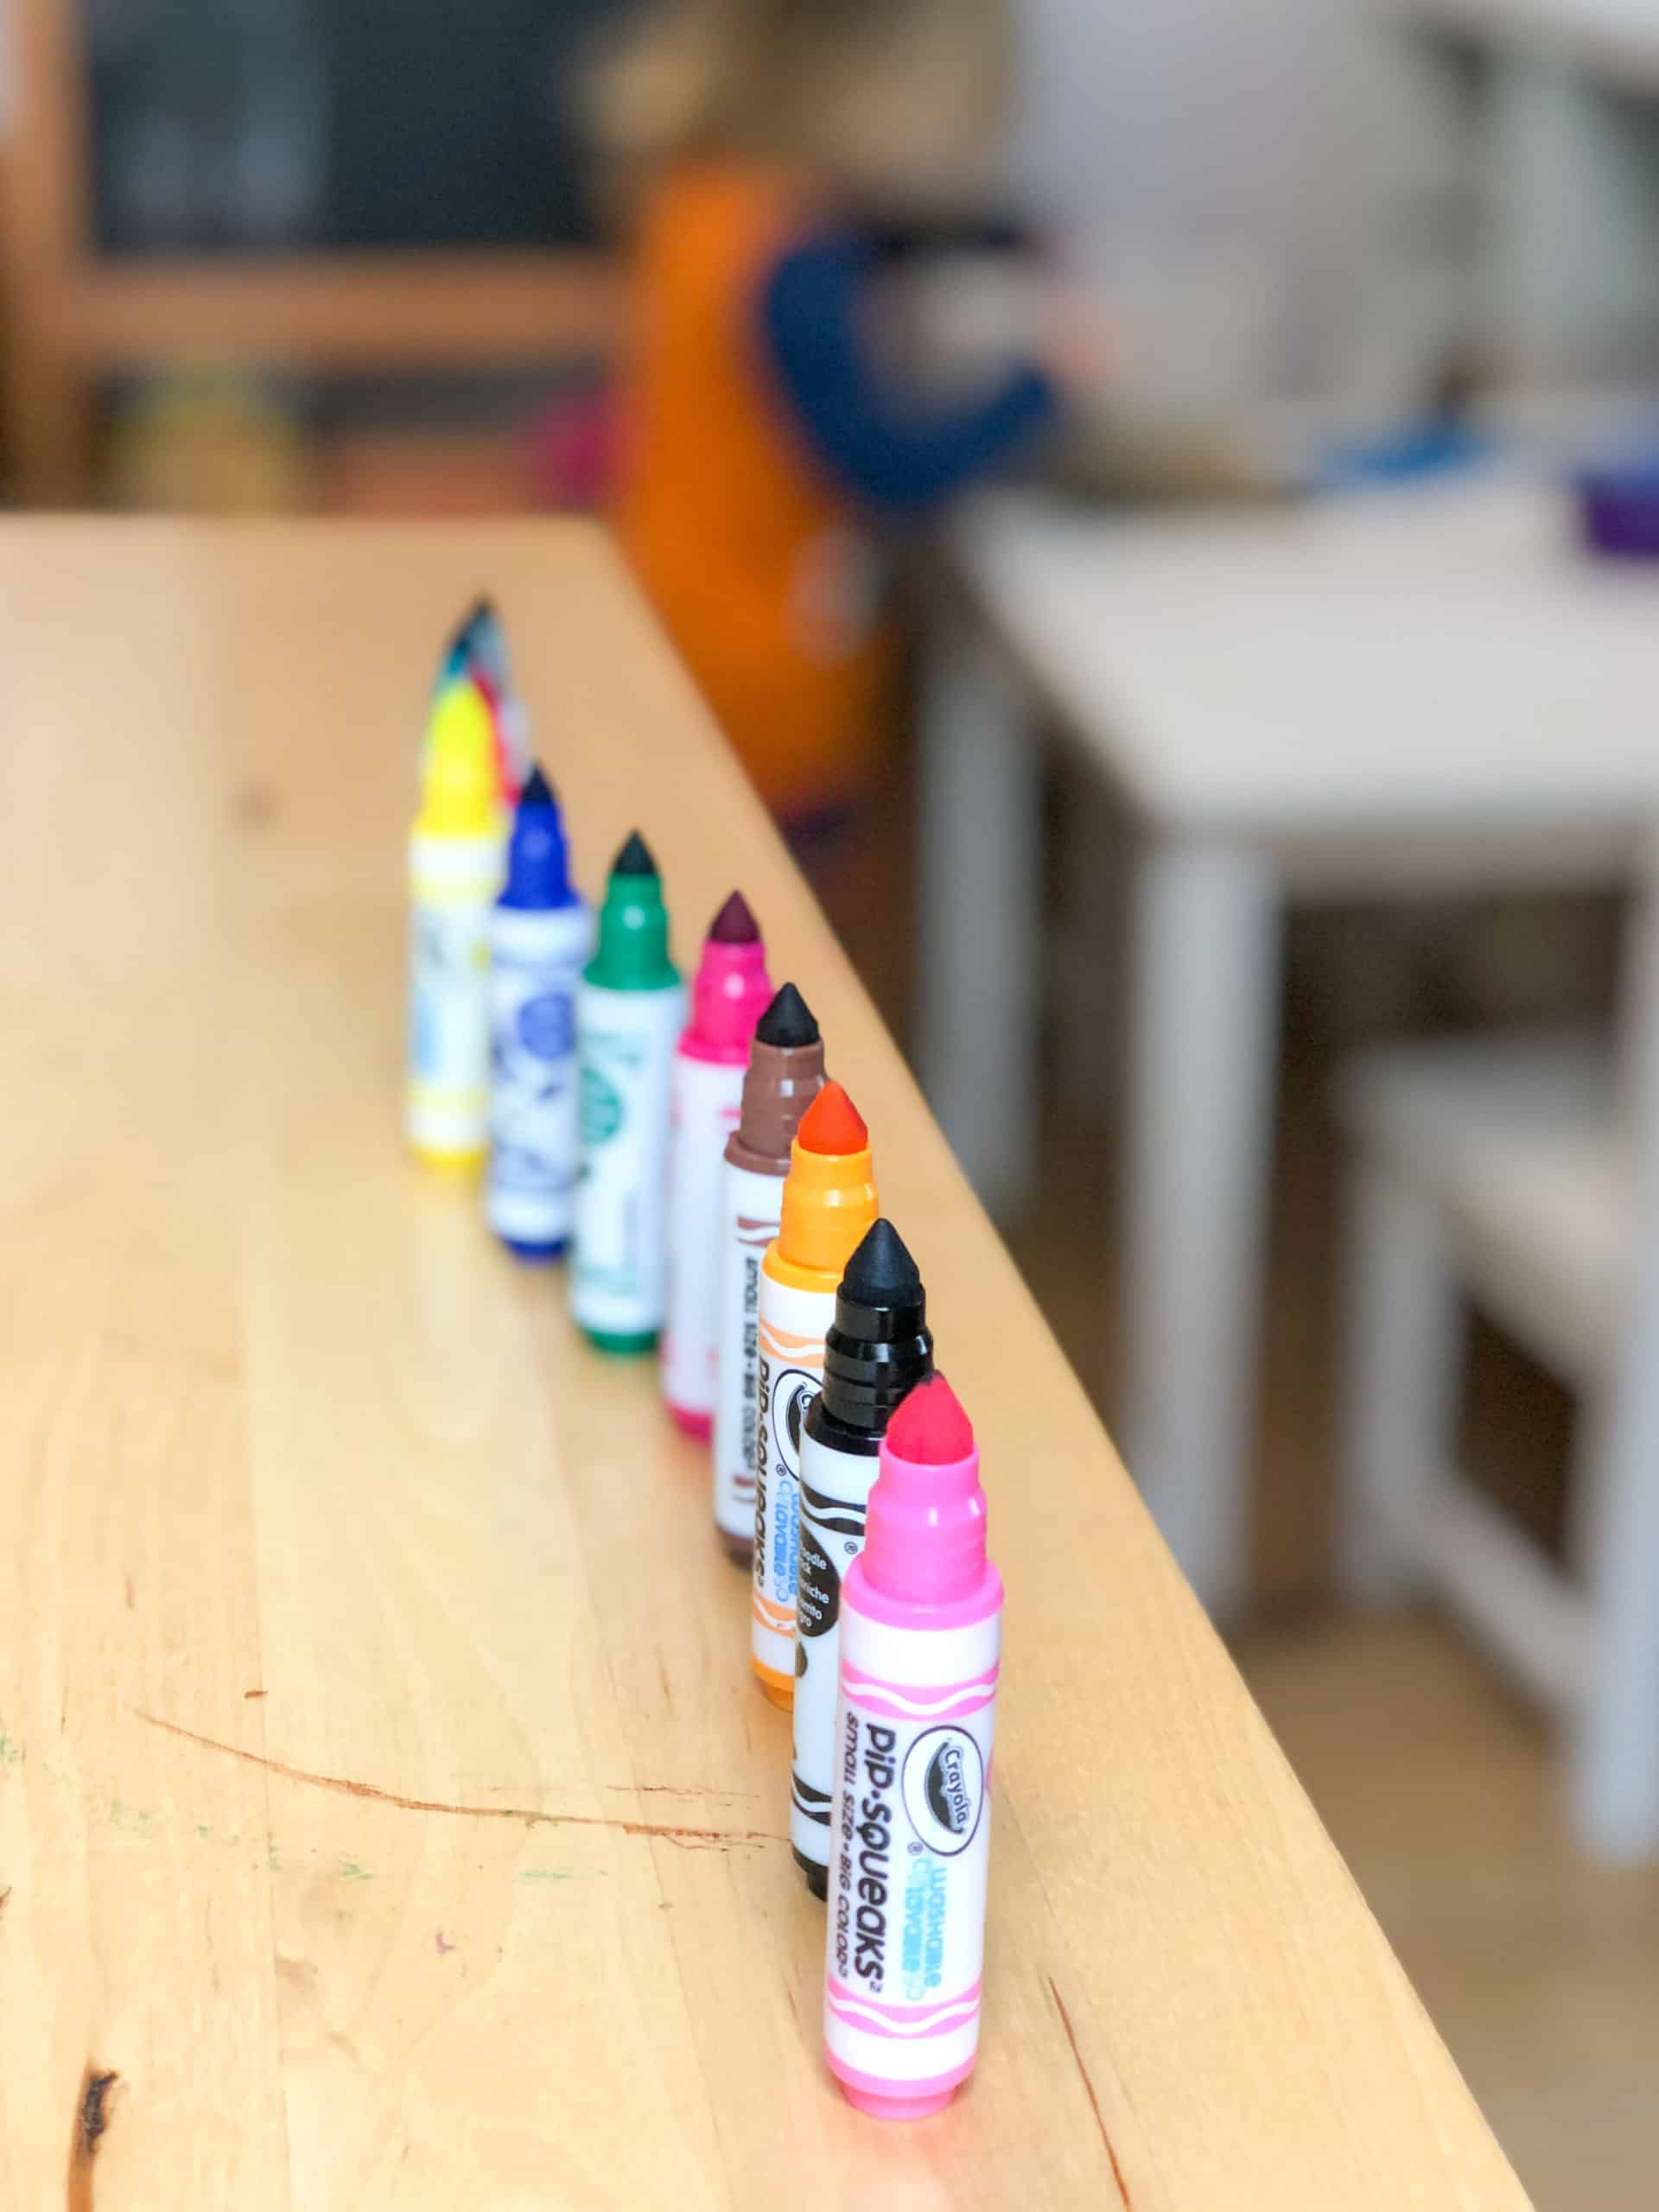 Summer bucket list ideas - colouring pencils and toddler creating